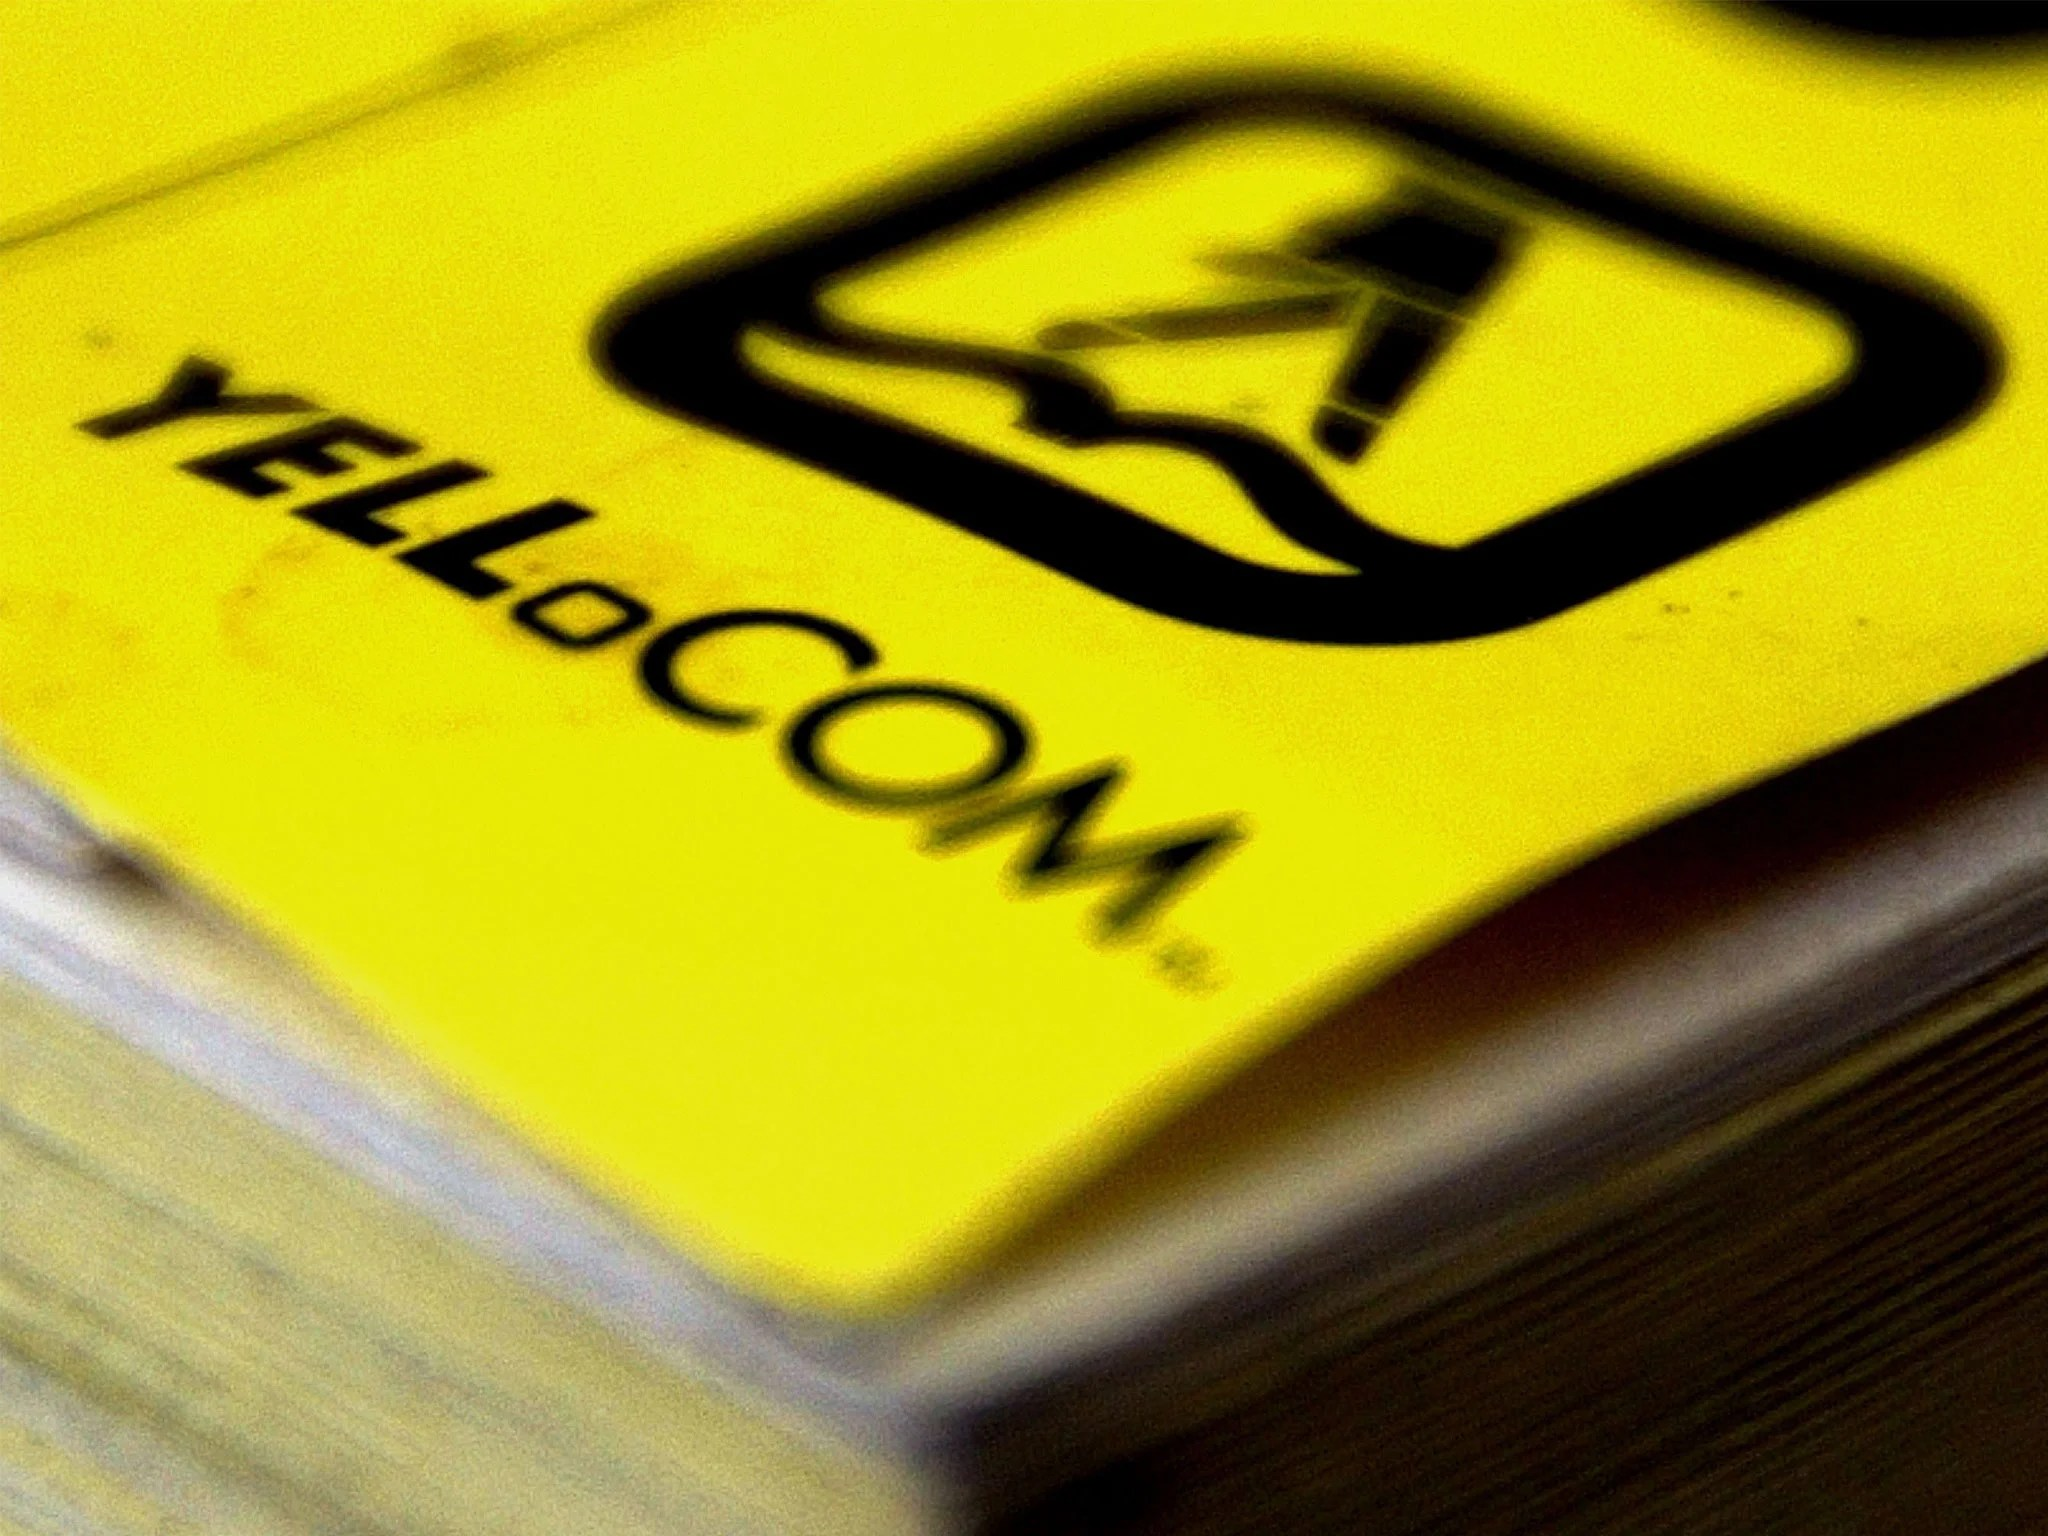 Yellow Pages Telephone Directory To Stop Being Printed After 51 Years